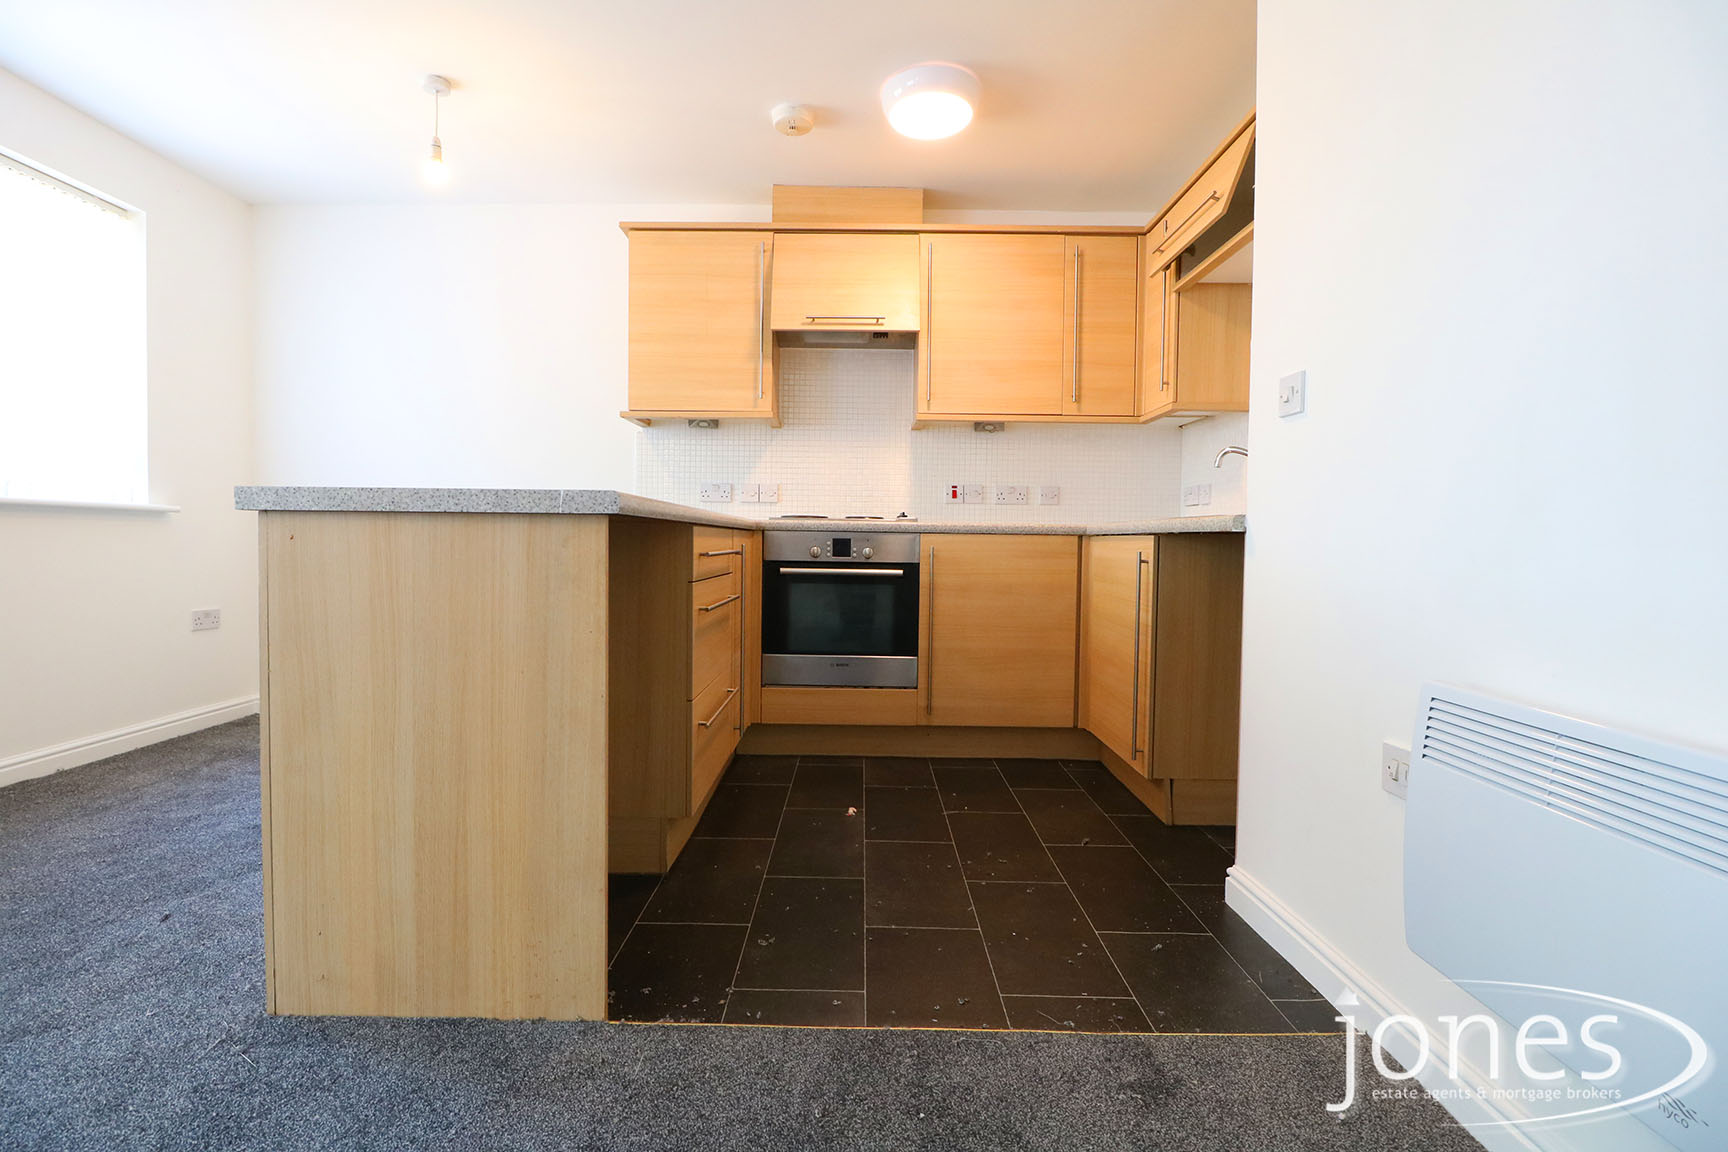 Home for Sale Let - Photo 03 Earls Court, Norton, Stockton on Tees TS20 2NP